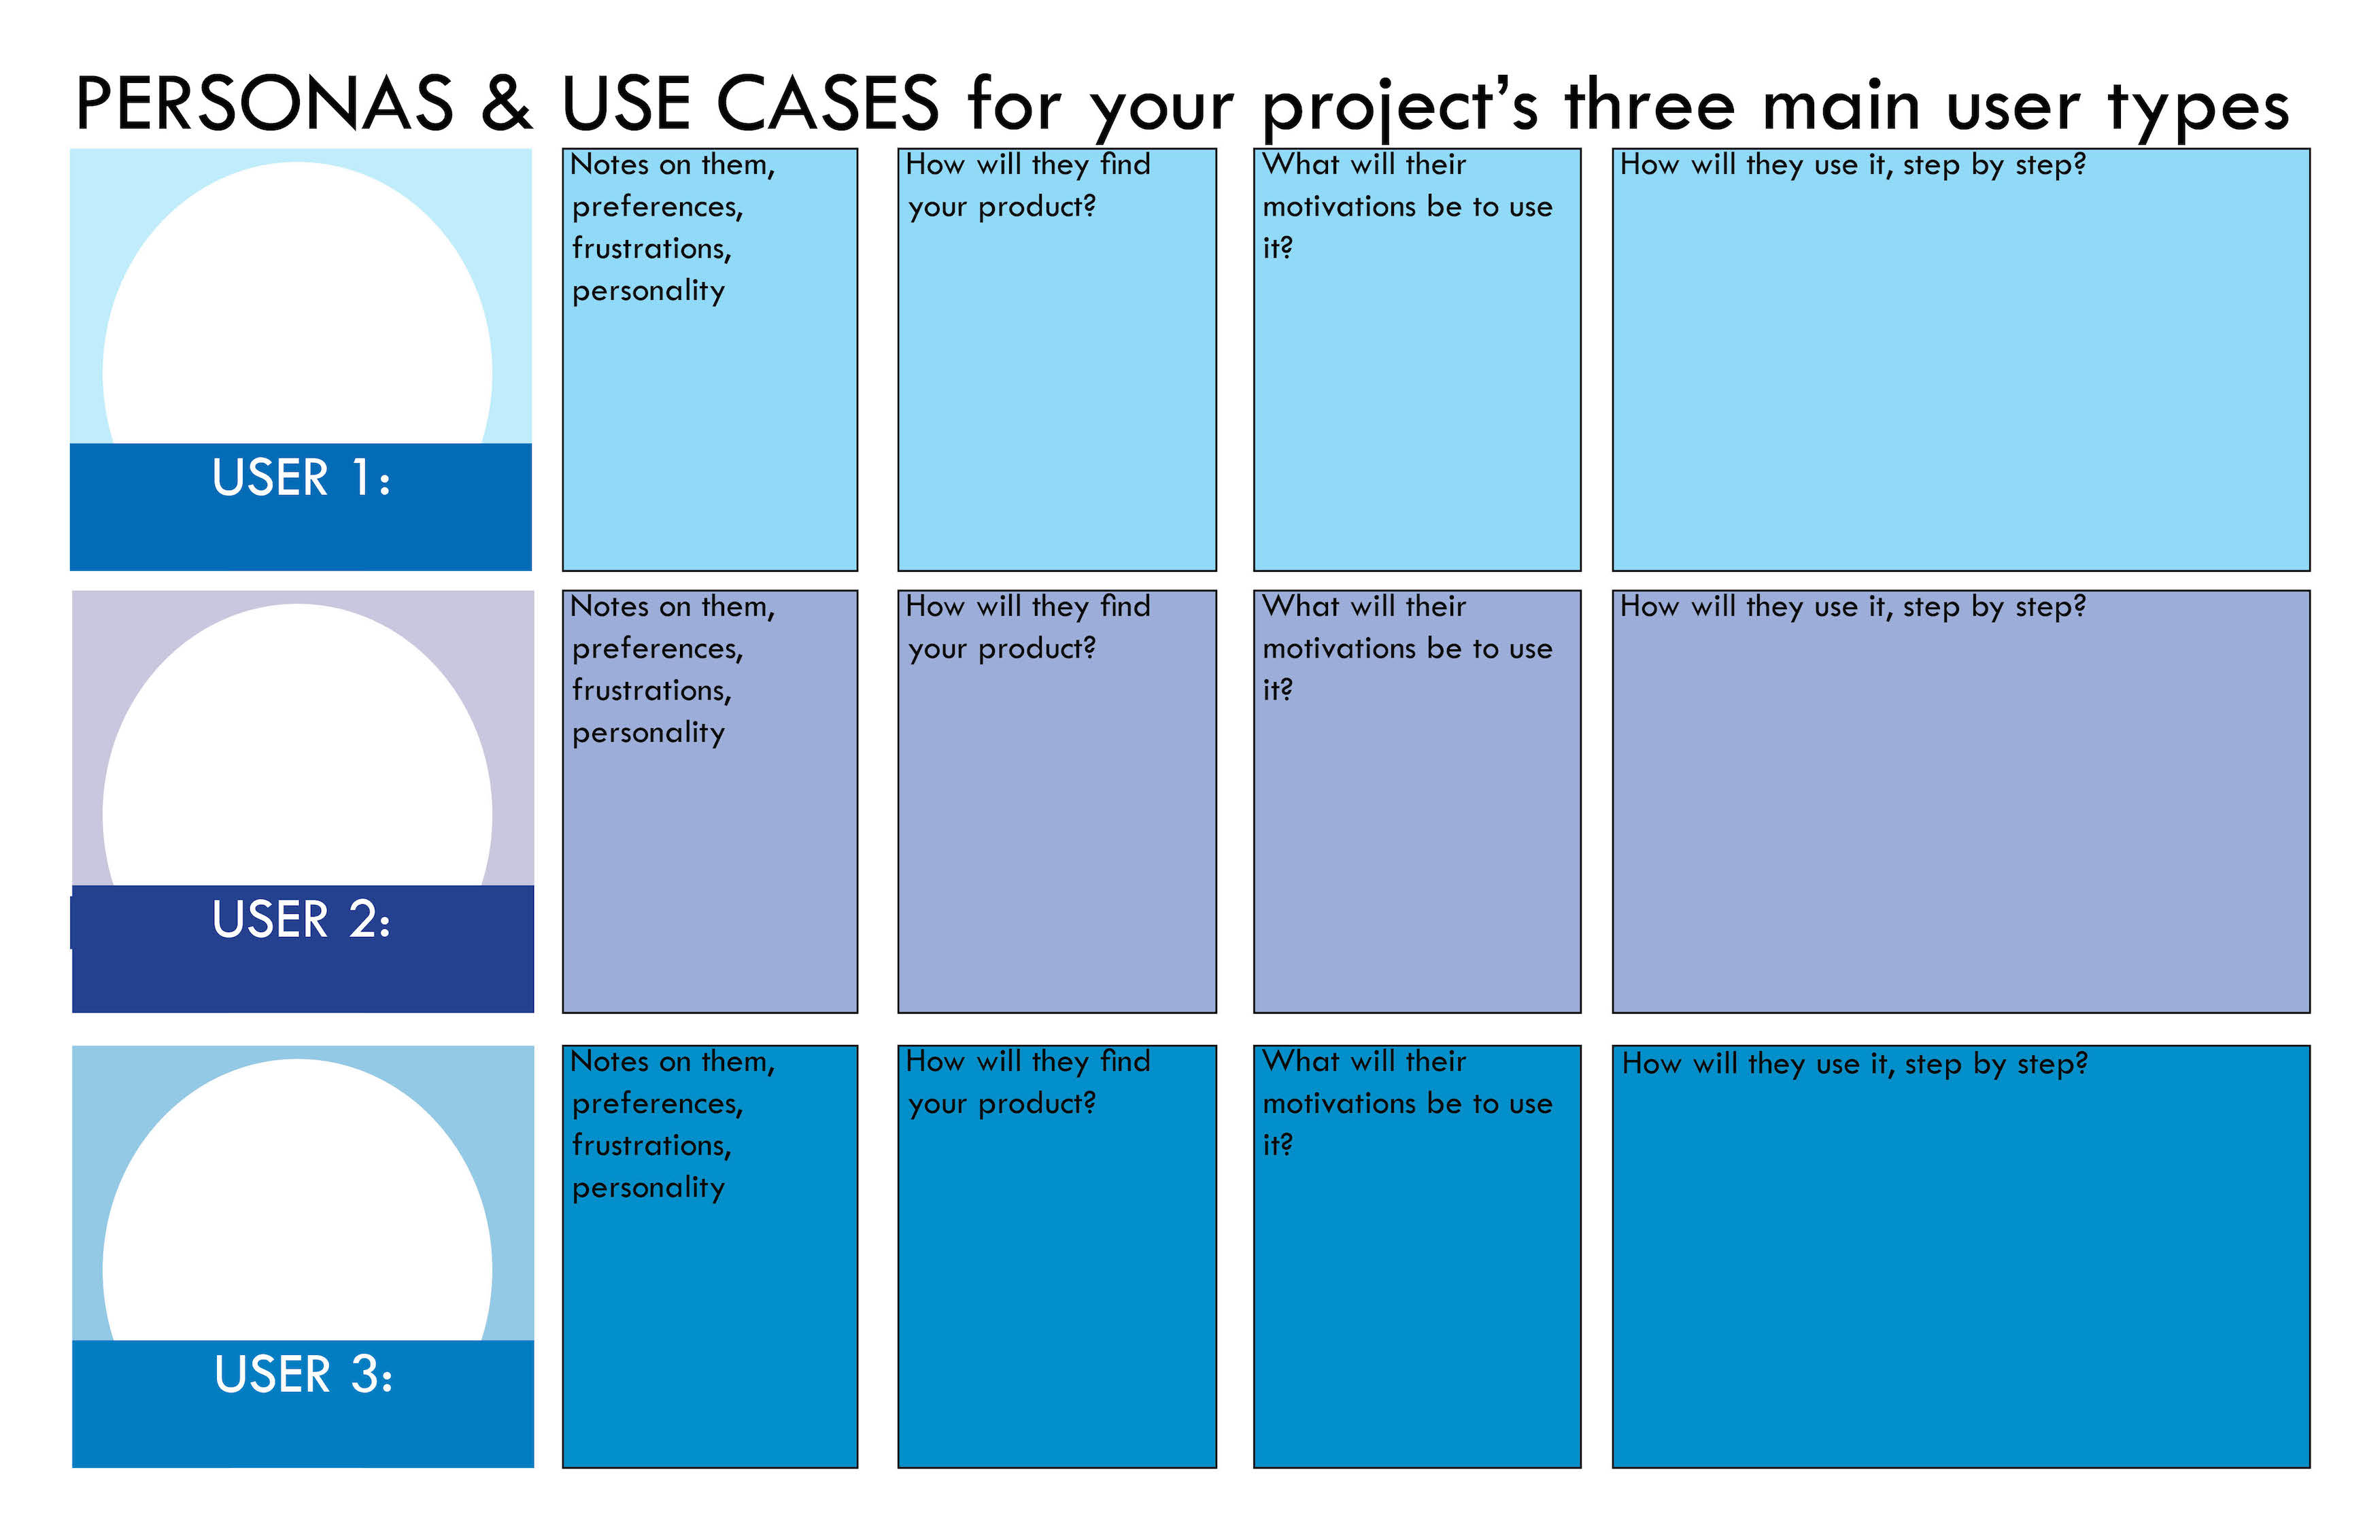 Persona and Use Case Document - KNow Your Users design tool - by Margaret hagan